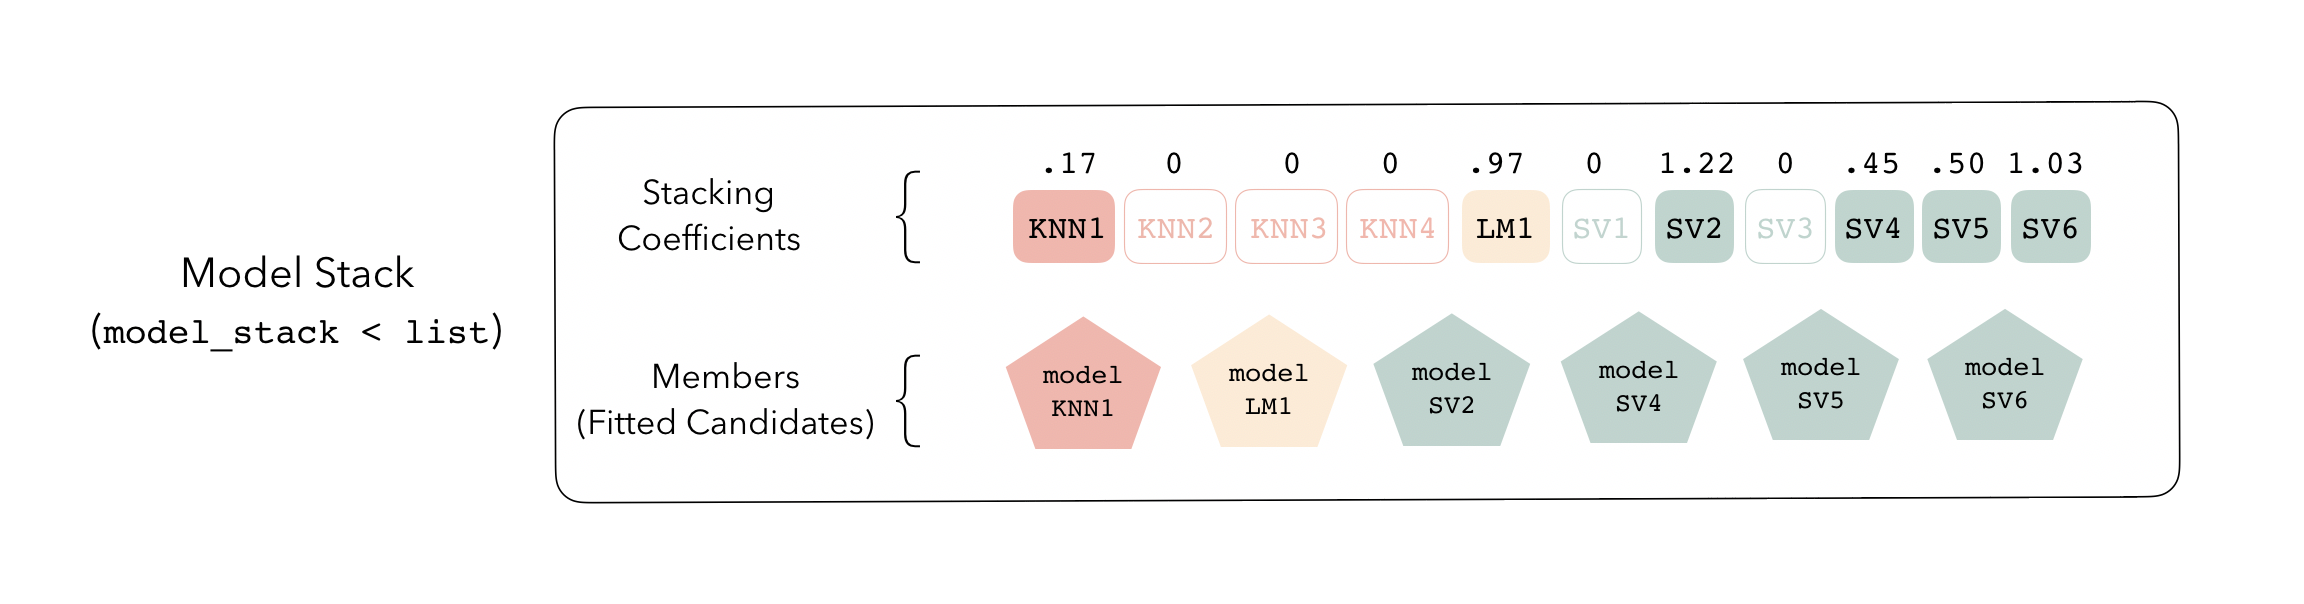 """Screenshot from the stacks package, showing how a model stack is made up of multiple fitted models, such as KNN, LM, and SV, that each get a """"stacking coefficient""""."""